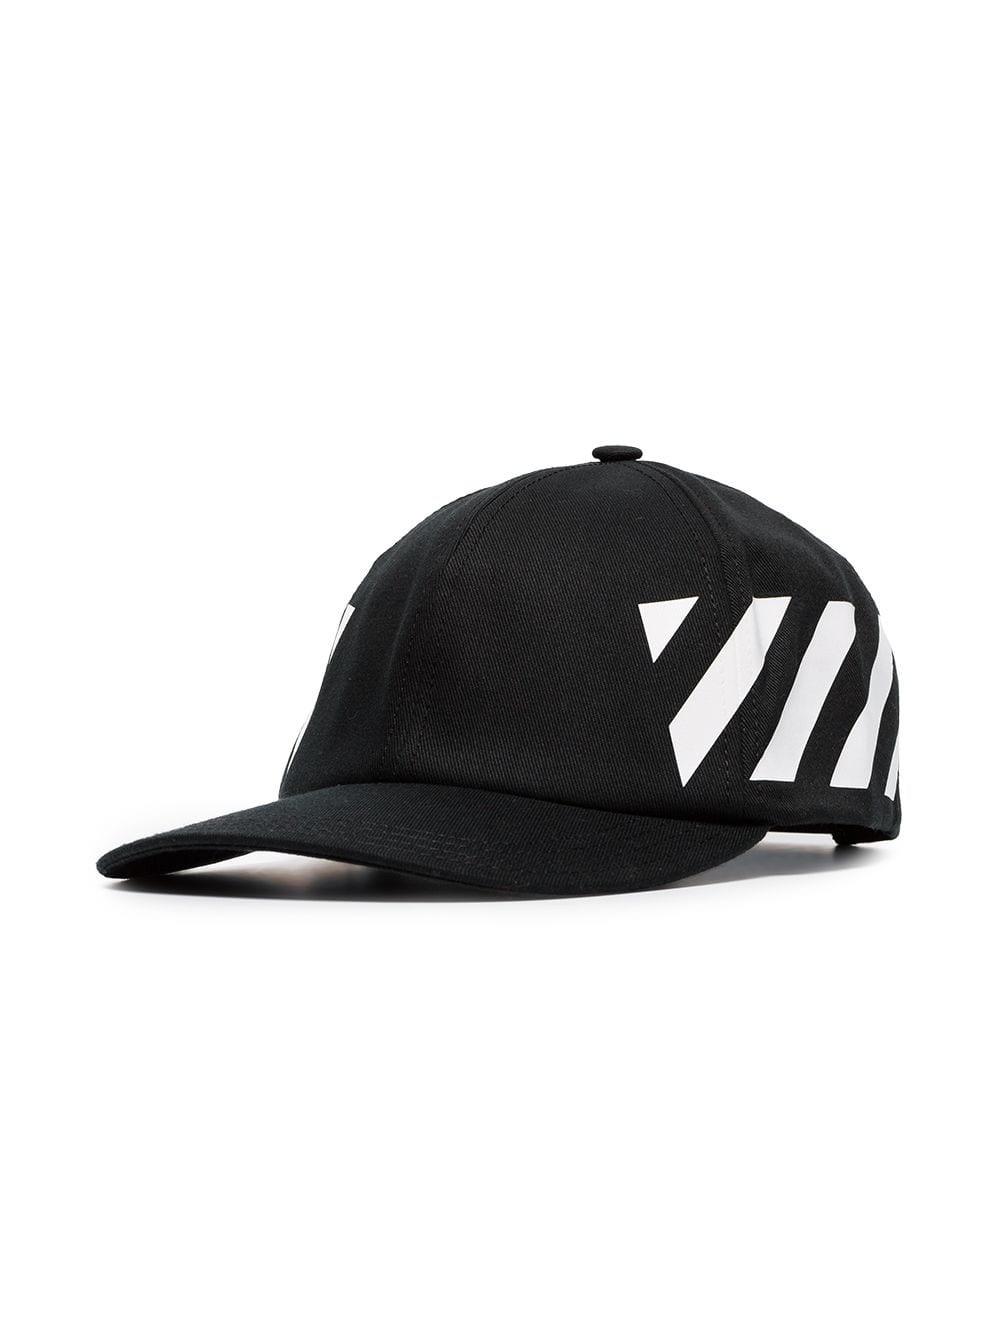 Off White Diag Baseball Cap Available On Montiboutique Com 29059